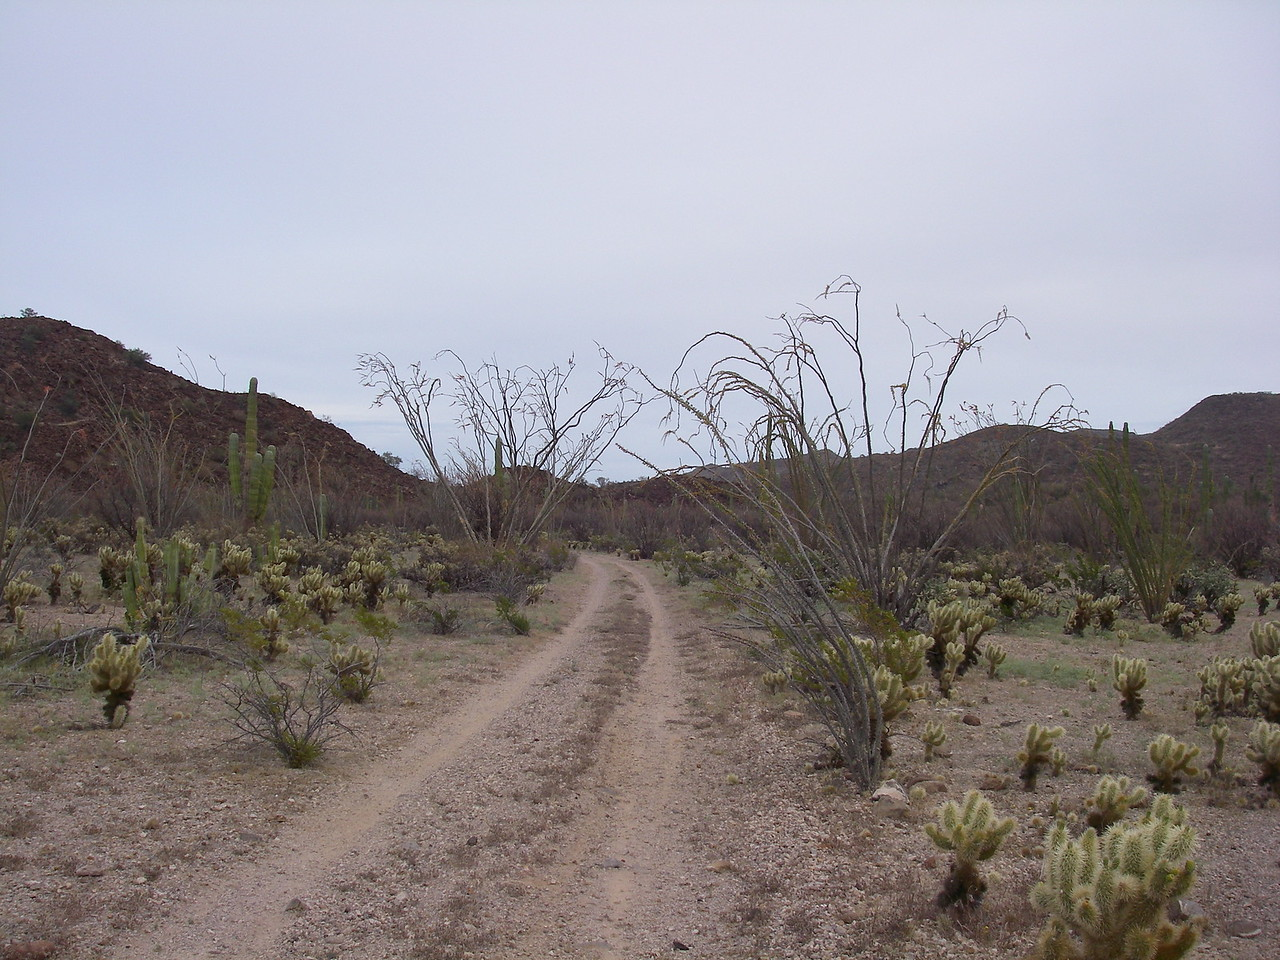 We come out of this little arroyo and up into this area that looks like someone with a green-thumb had planted a beautiful cactus garden.